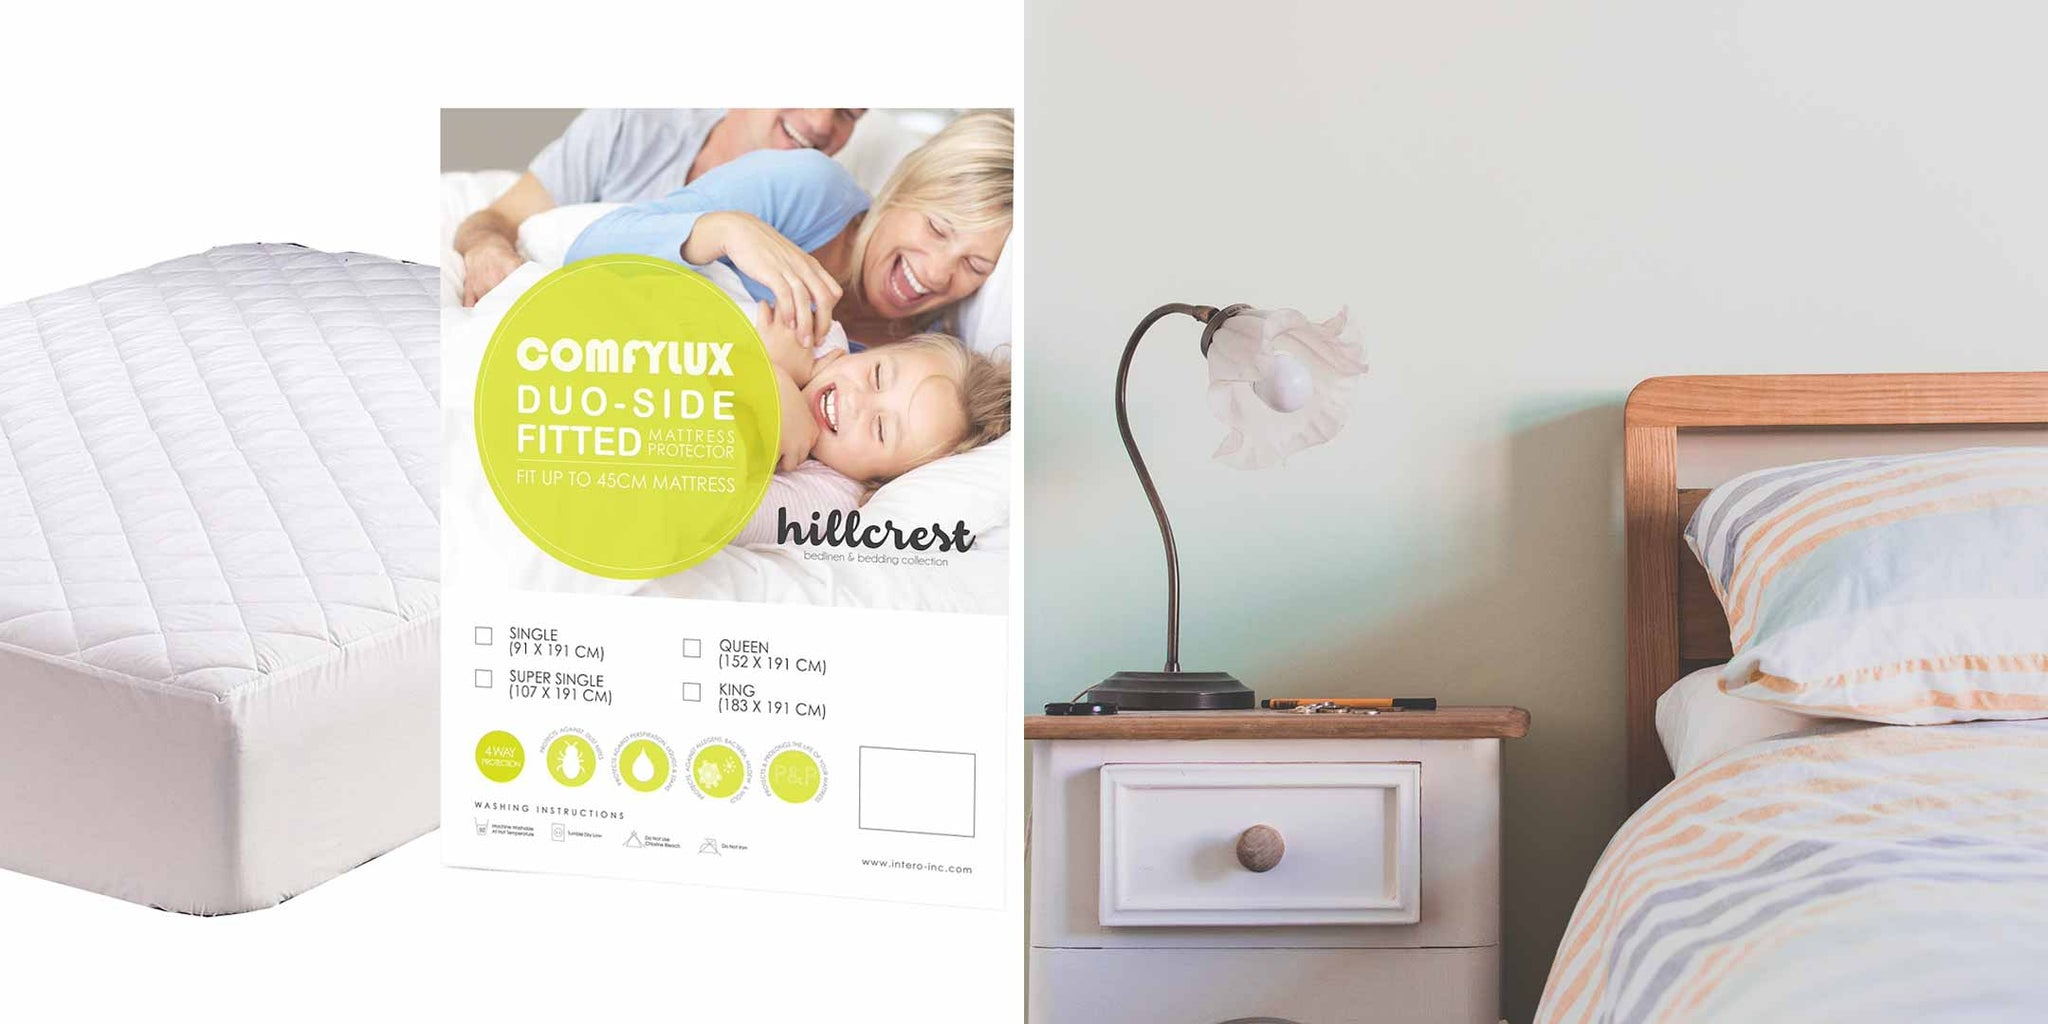 Monitor your bedroom and use mattress protectors to prevent bed bugs